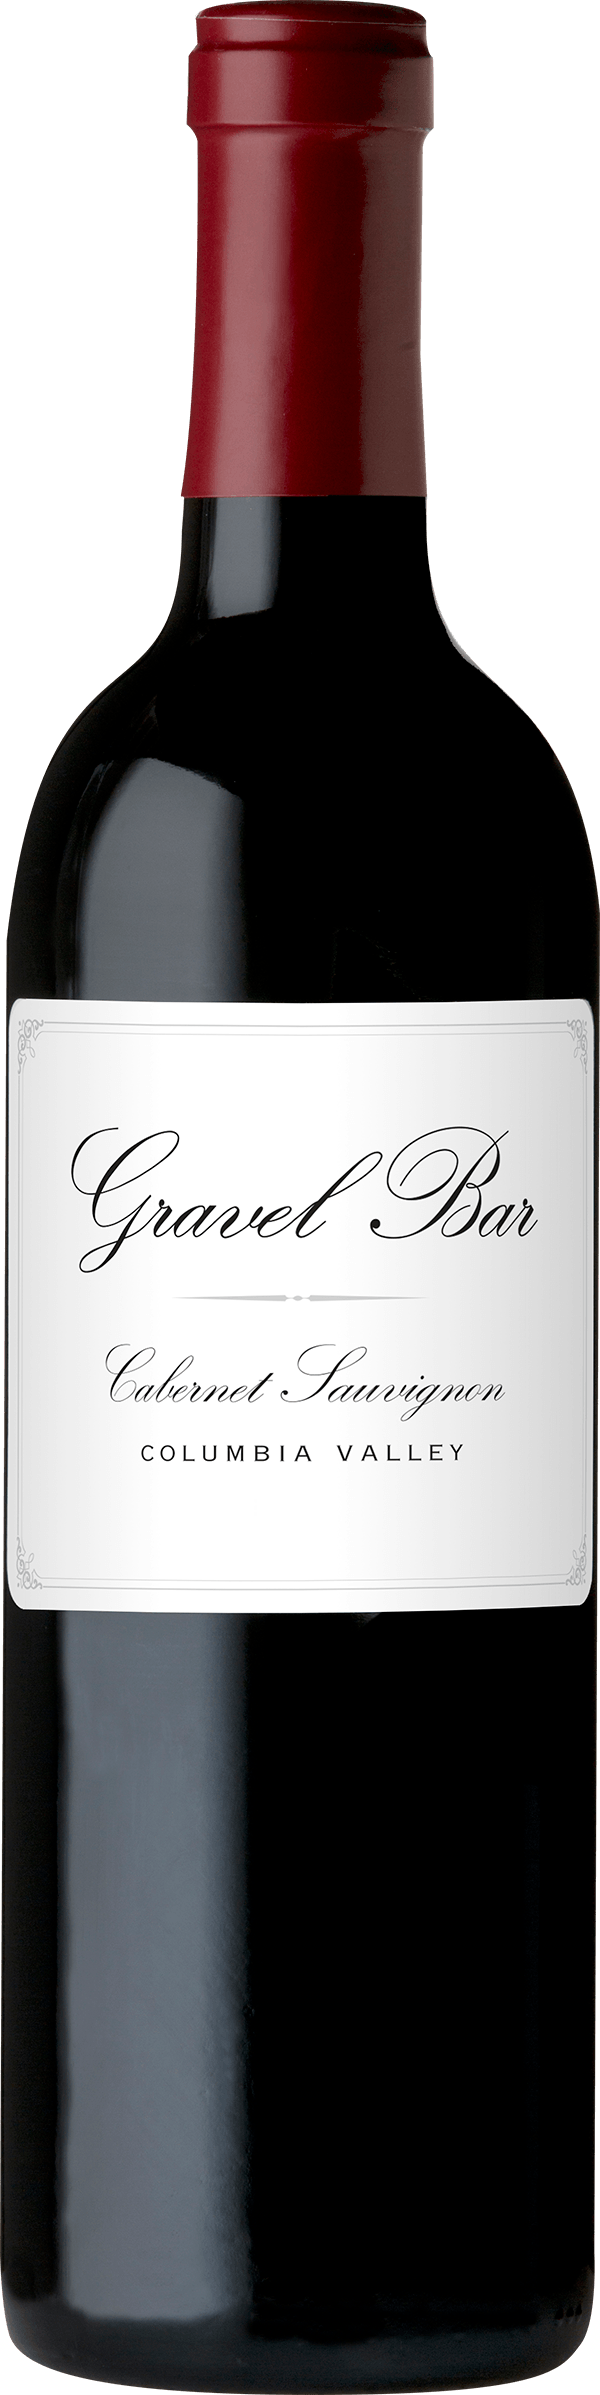 A bottle of the Cabernet Sauvignon